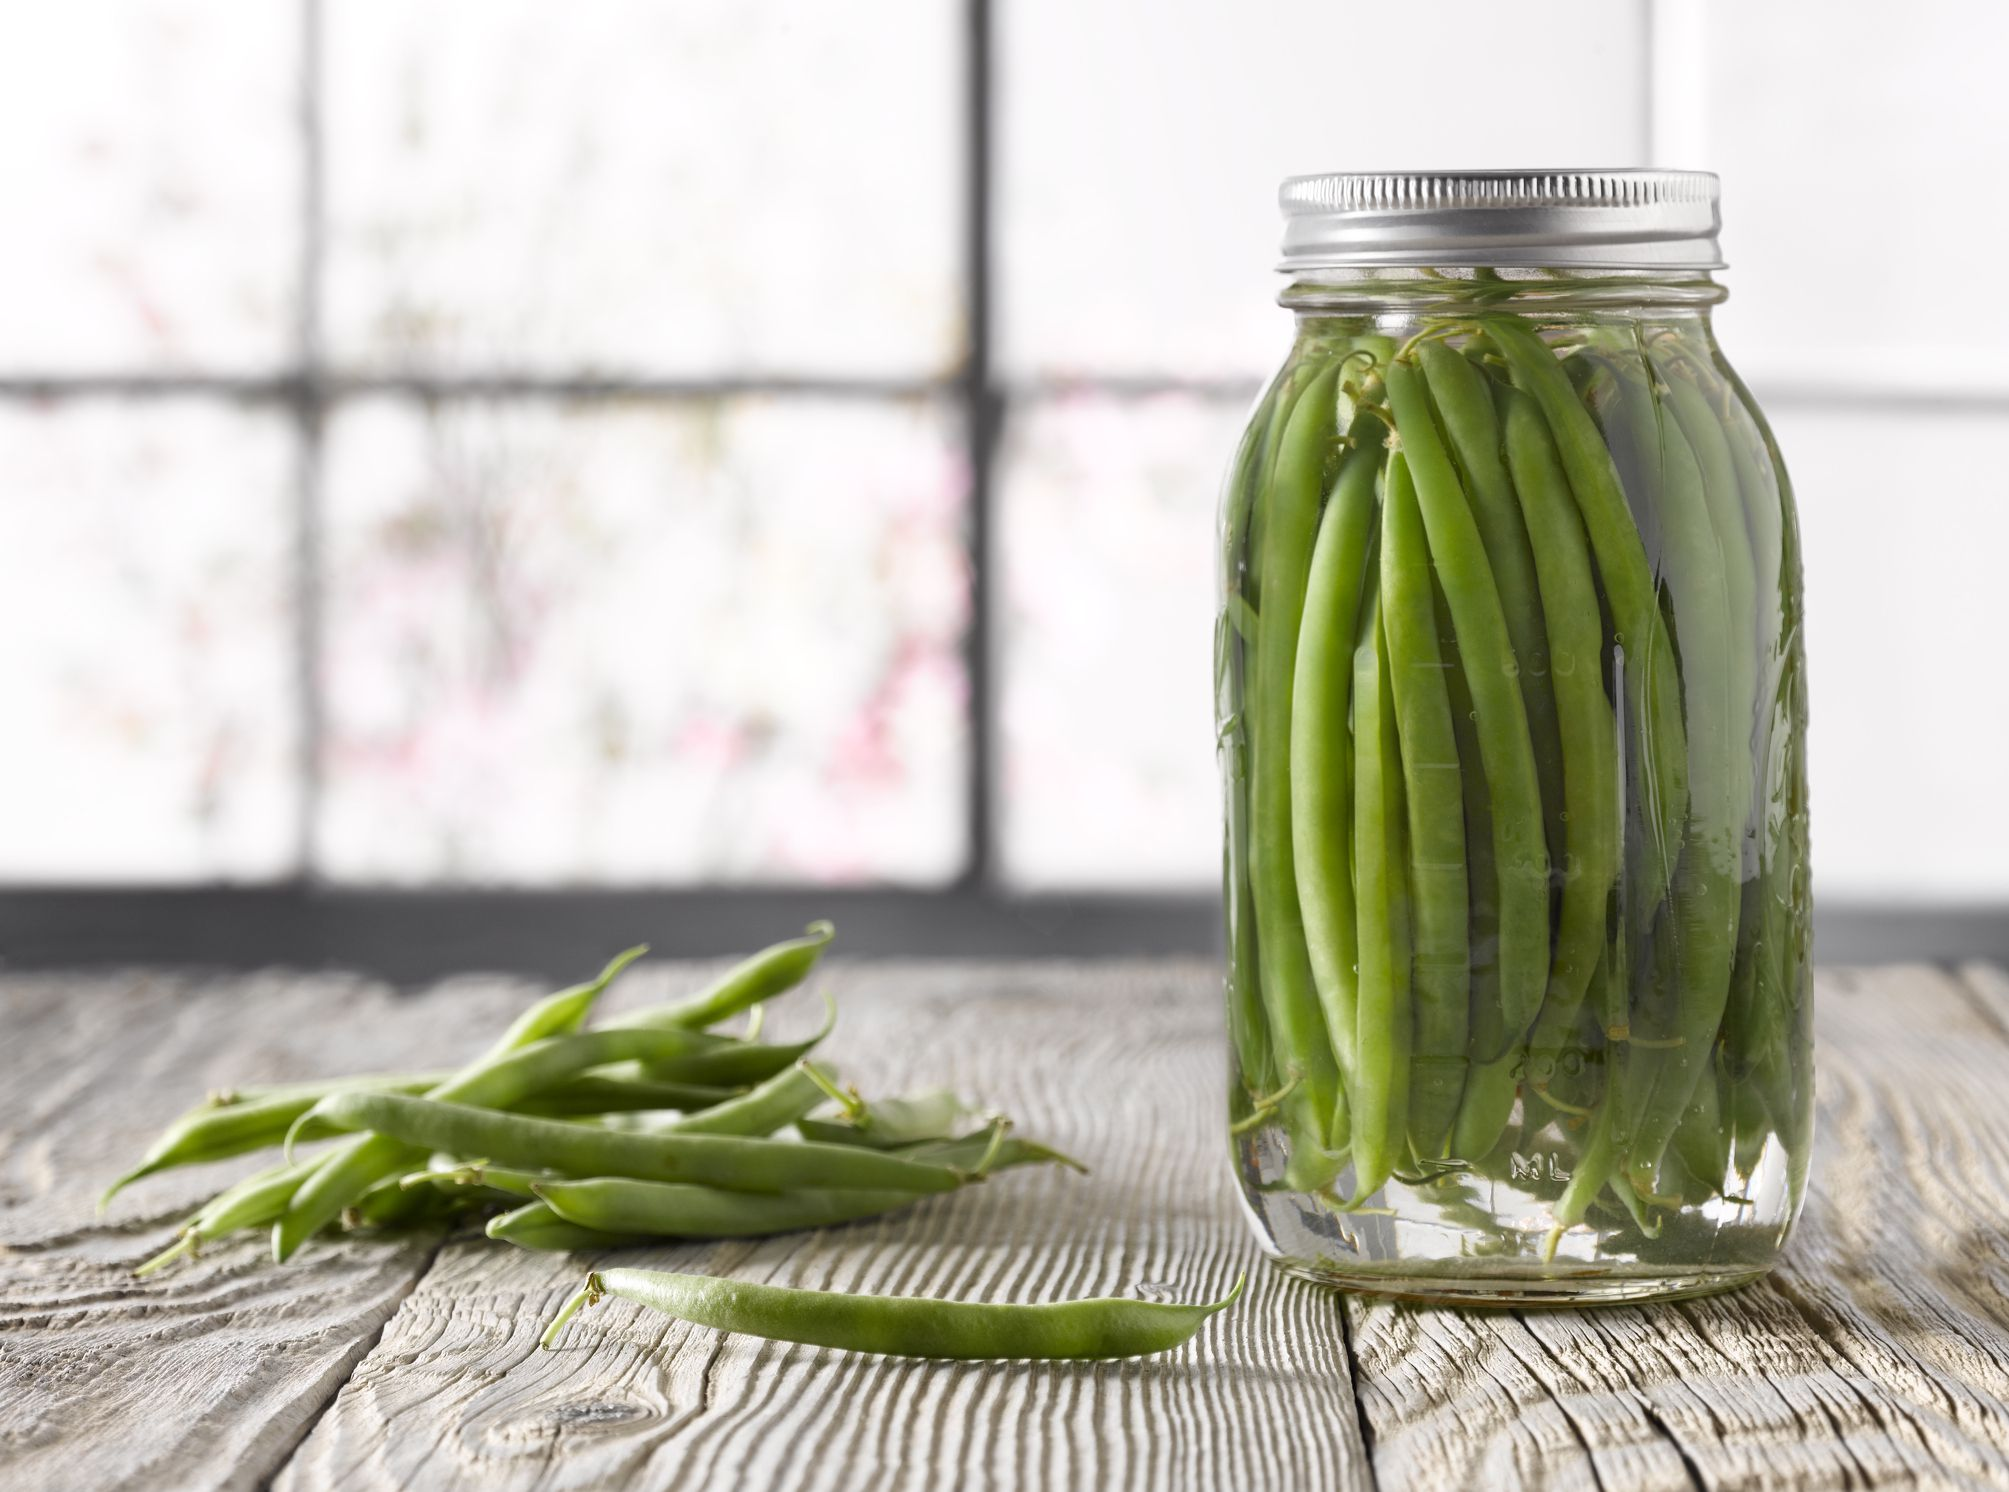 It is a Cinch to Turn Fresh Green Beans Into Snappy Pickles